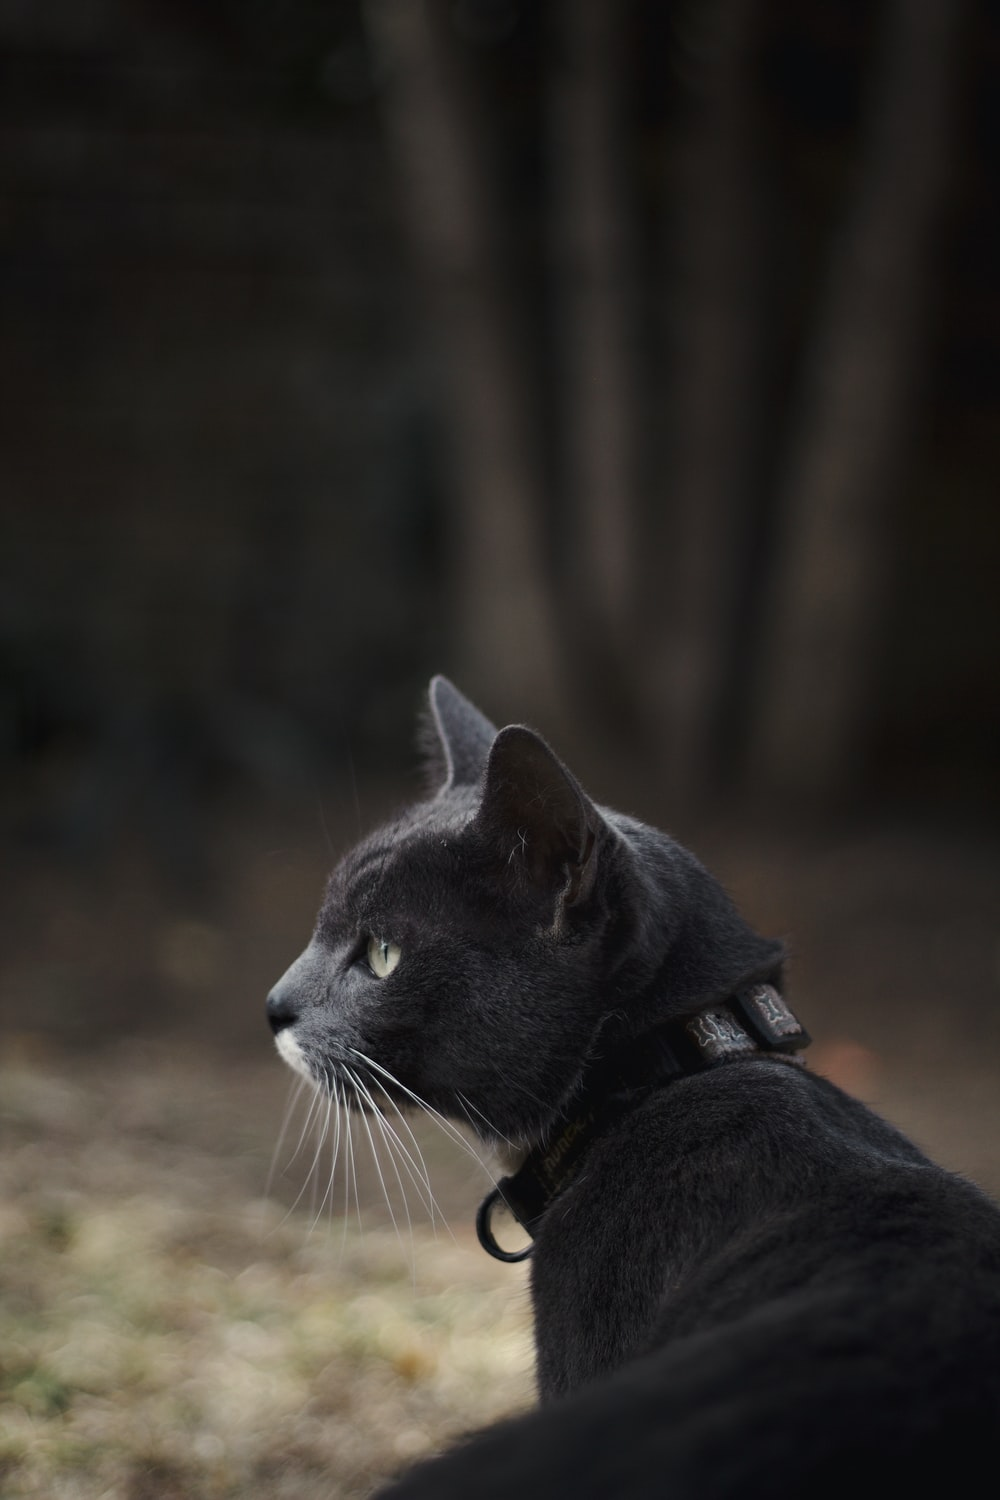 black and white cat on brown ground